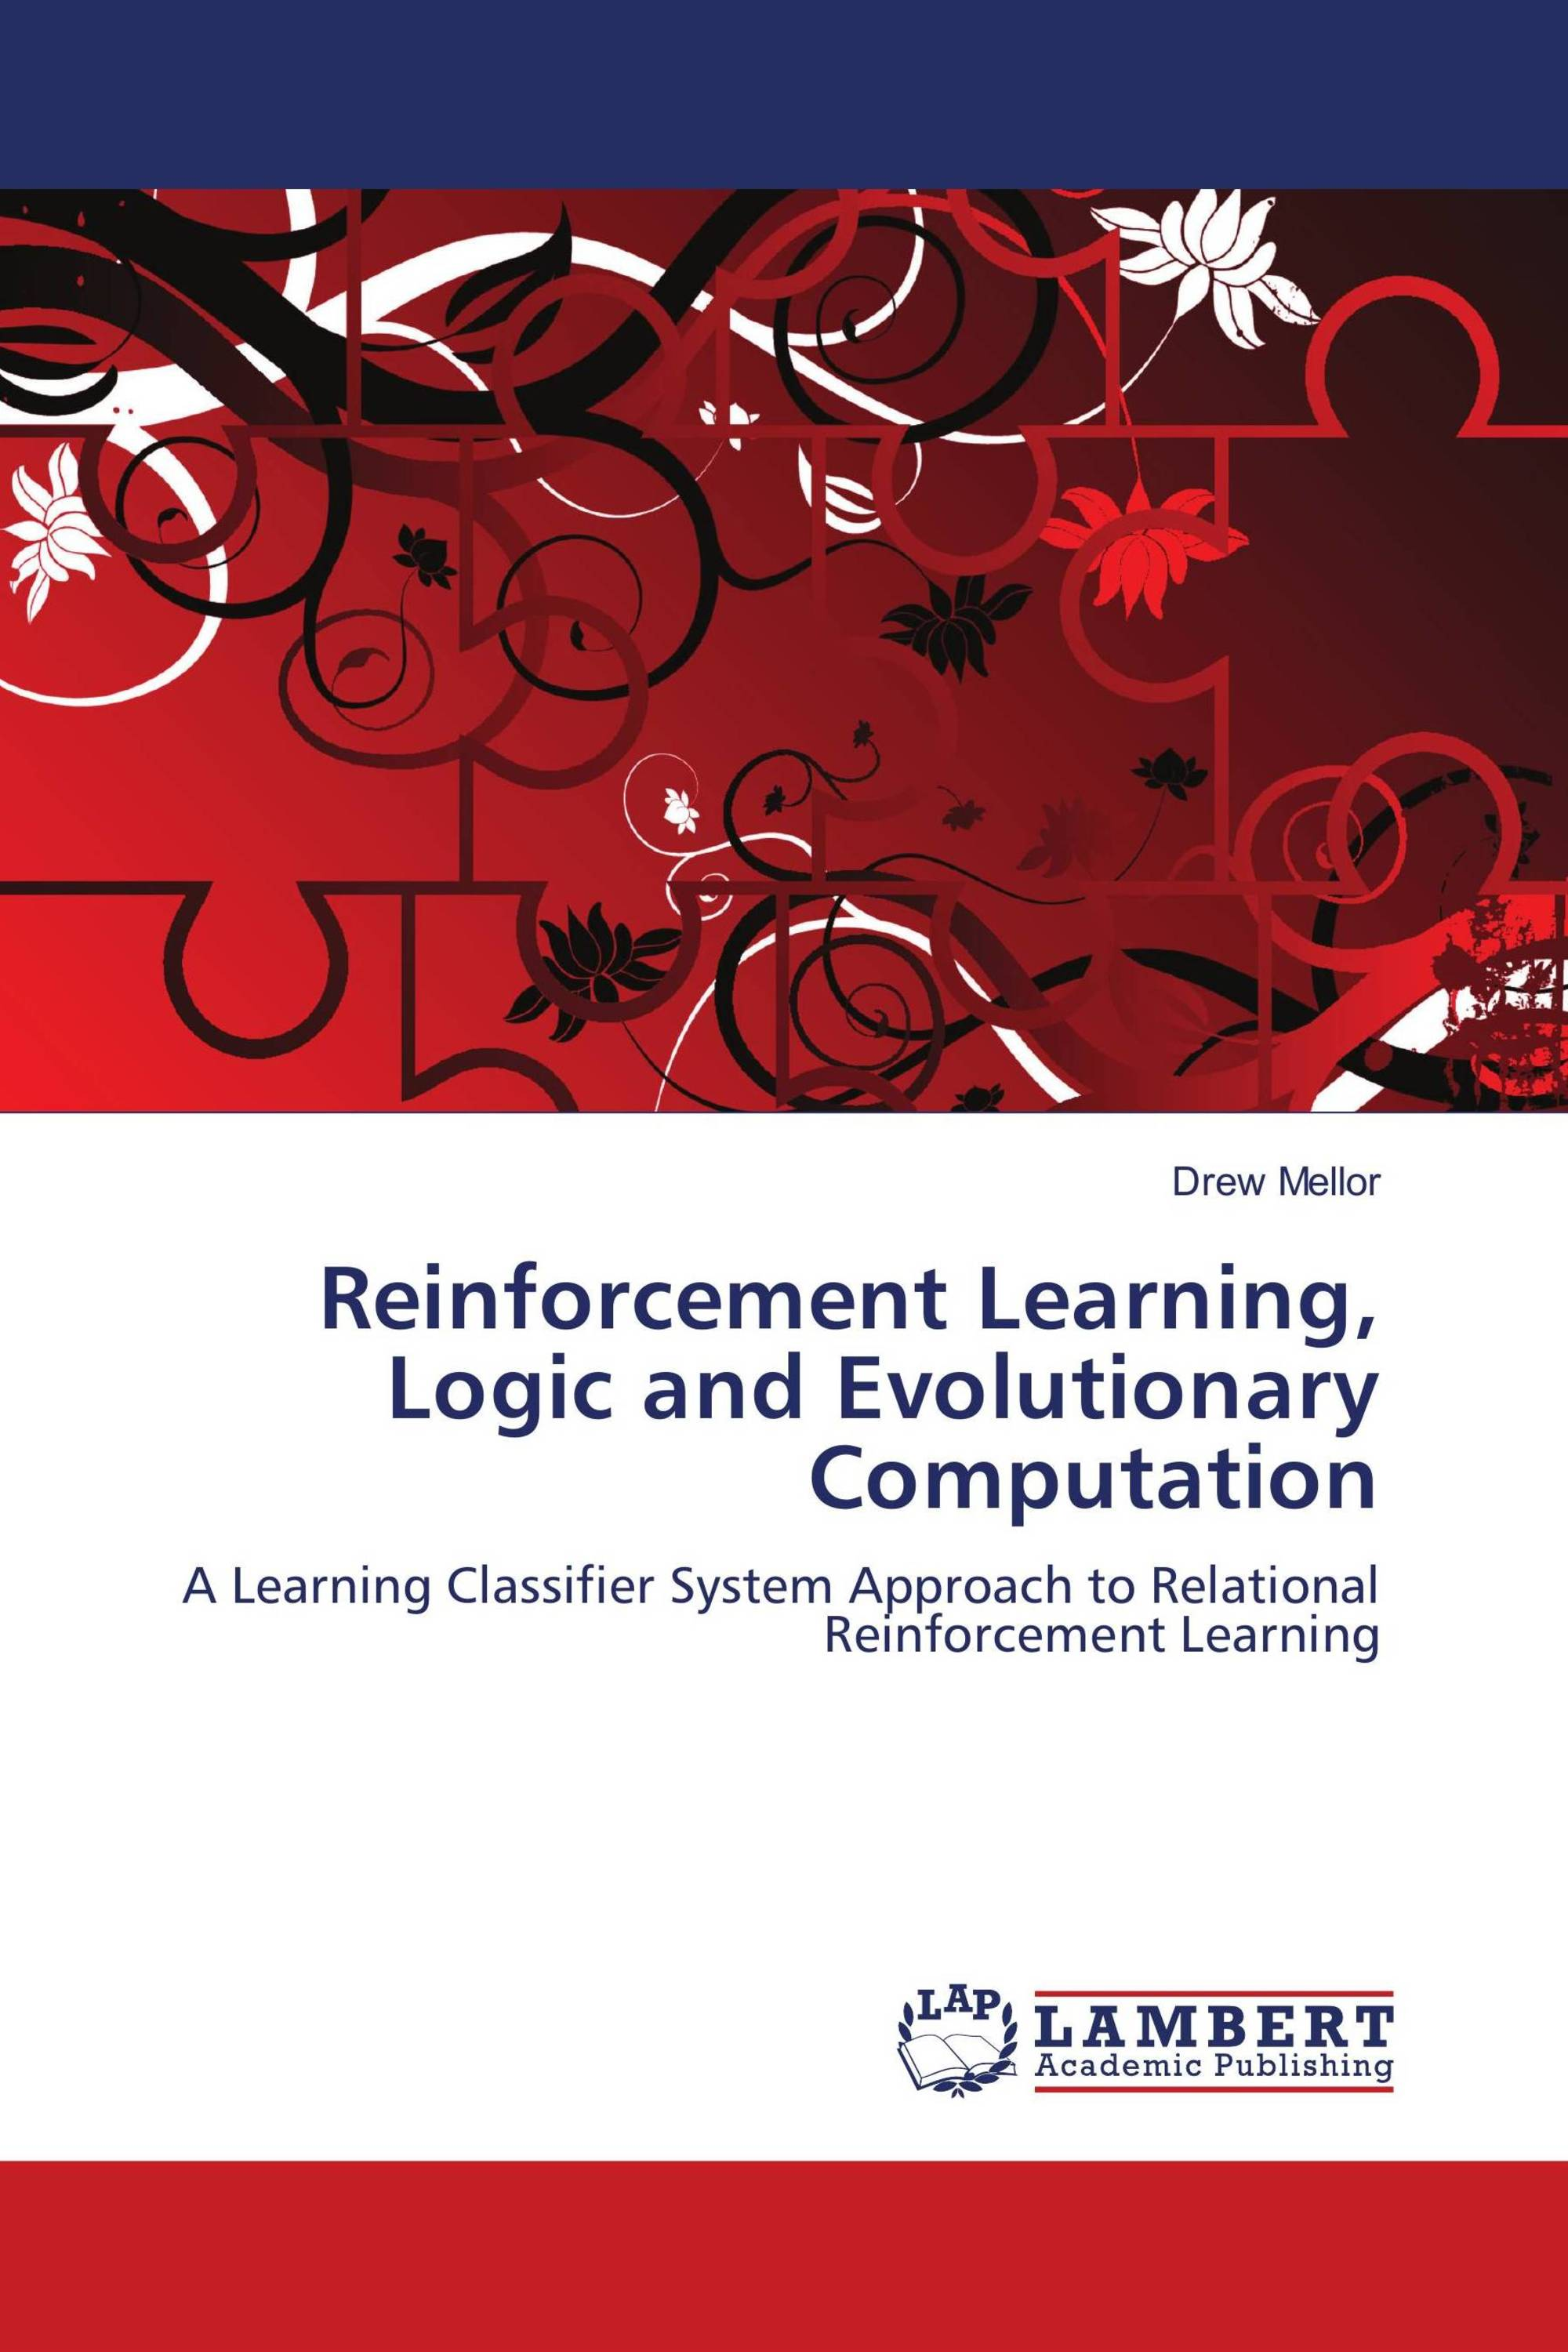 Reinforcement Learning, Logic and Evolutionary Computation